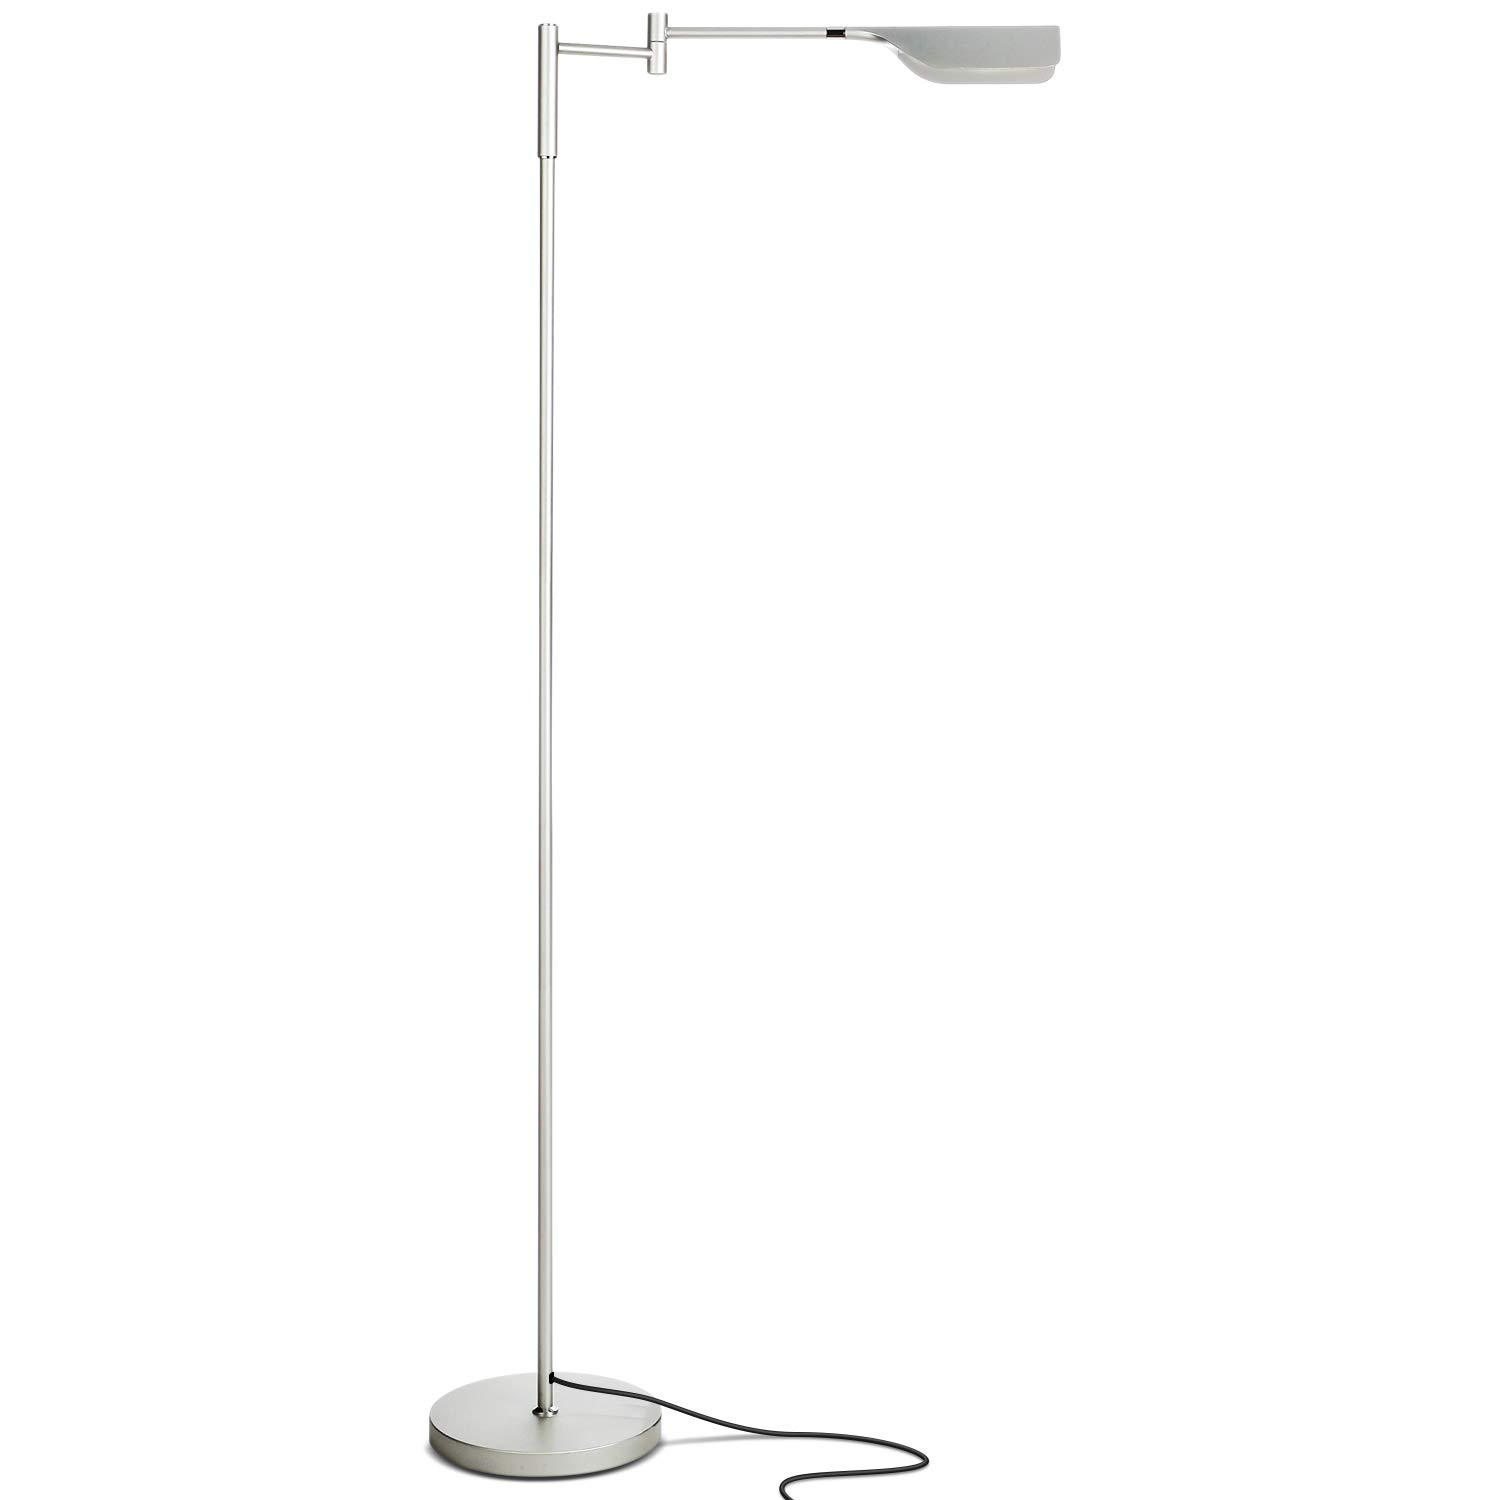 Brightech Leaf - Bright LED Floor Lamp for Reading, Crafts & Precise Tasks - Standing Modern Pharmacy Light for Living Room, Sewing - Great by Office Desks & Tables - Platinum Silver